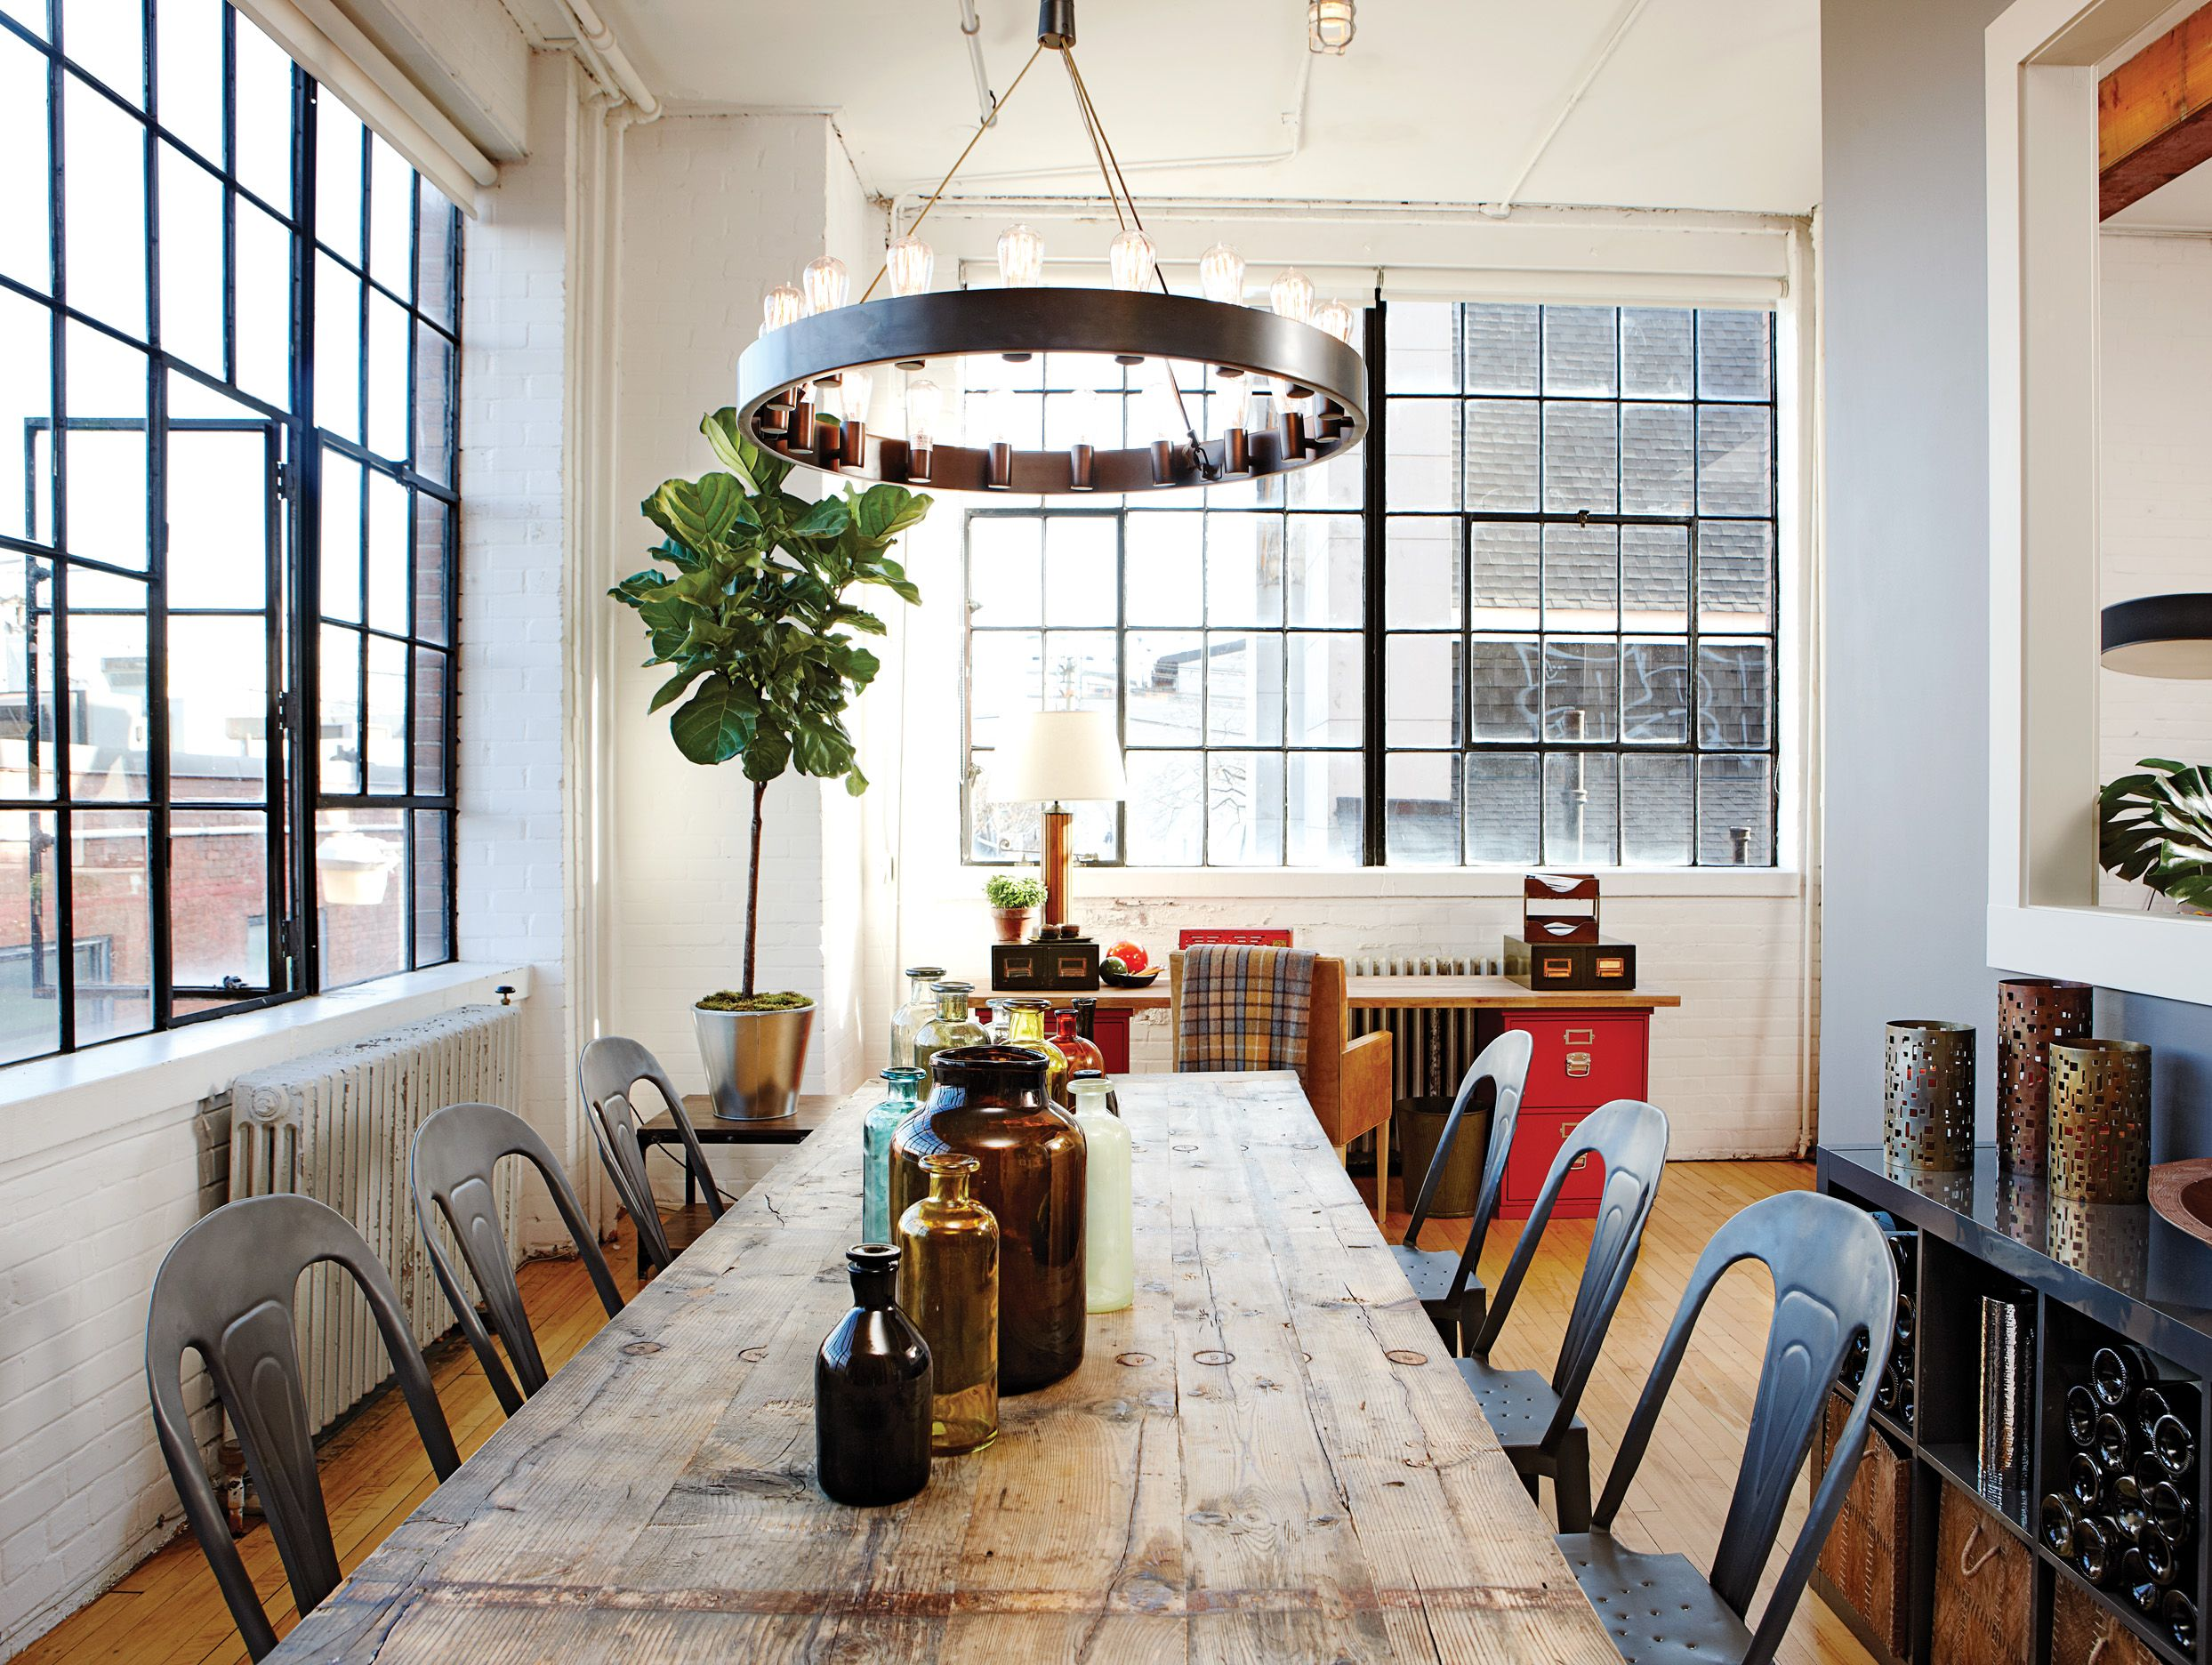 A Giant Table Made From Reclaimed Wood Takes Centre Stage In This Dining Area